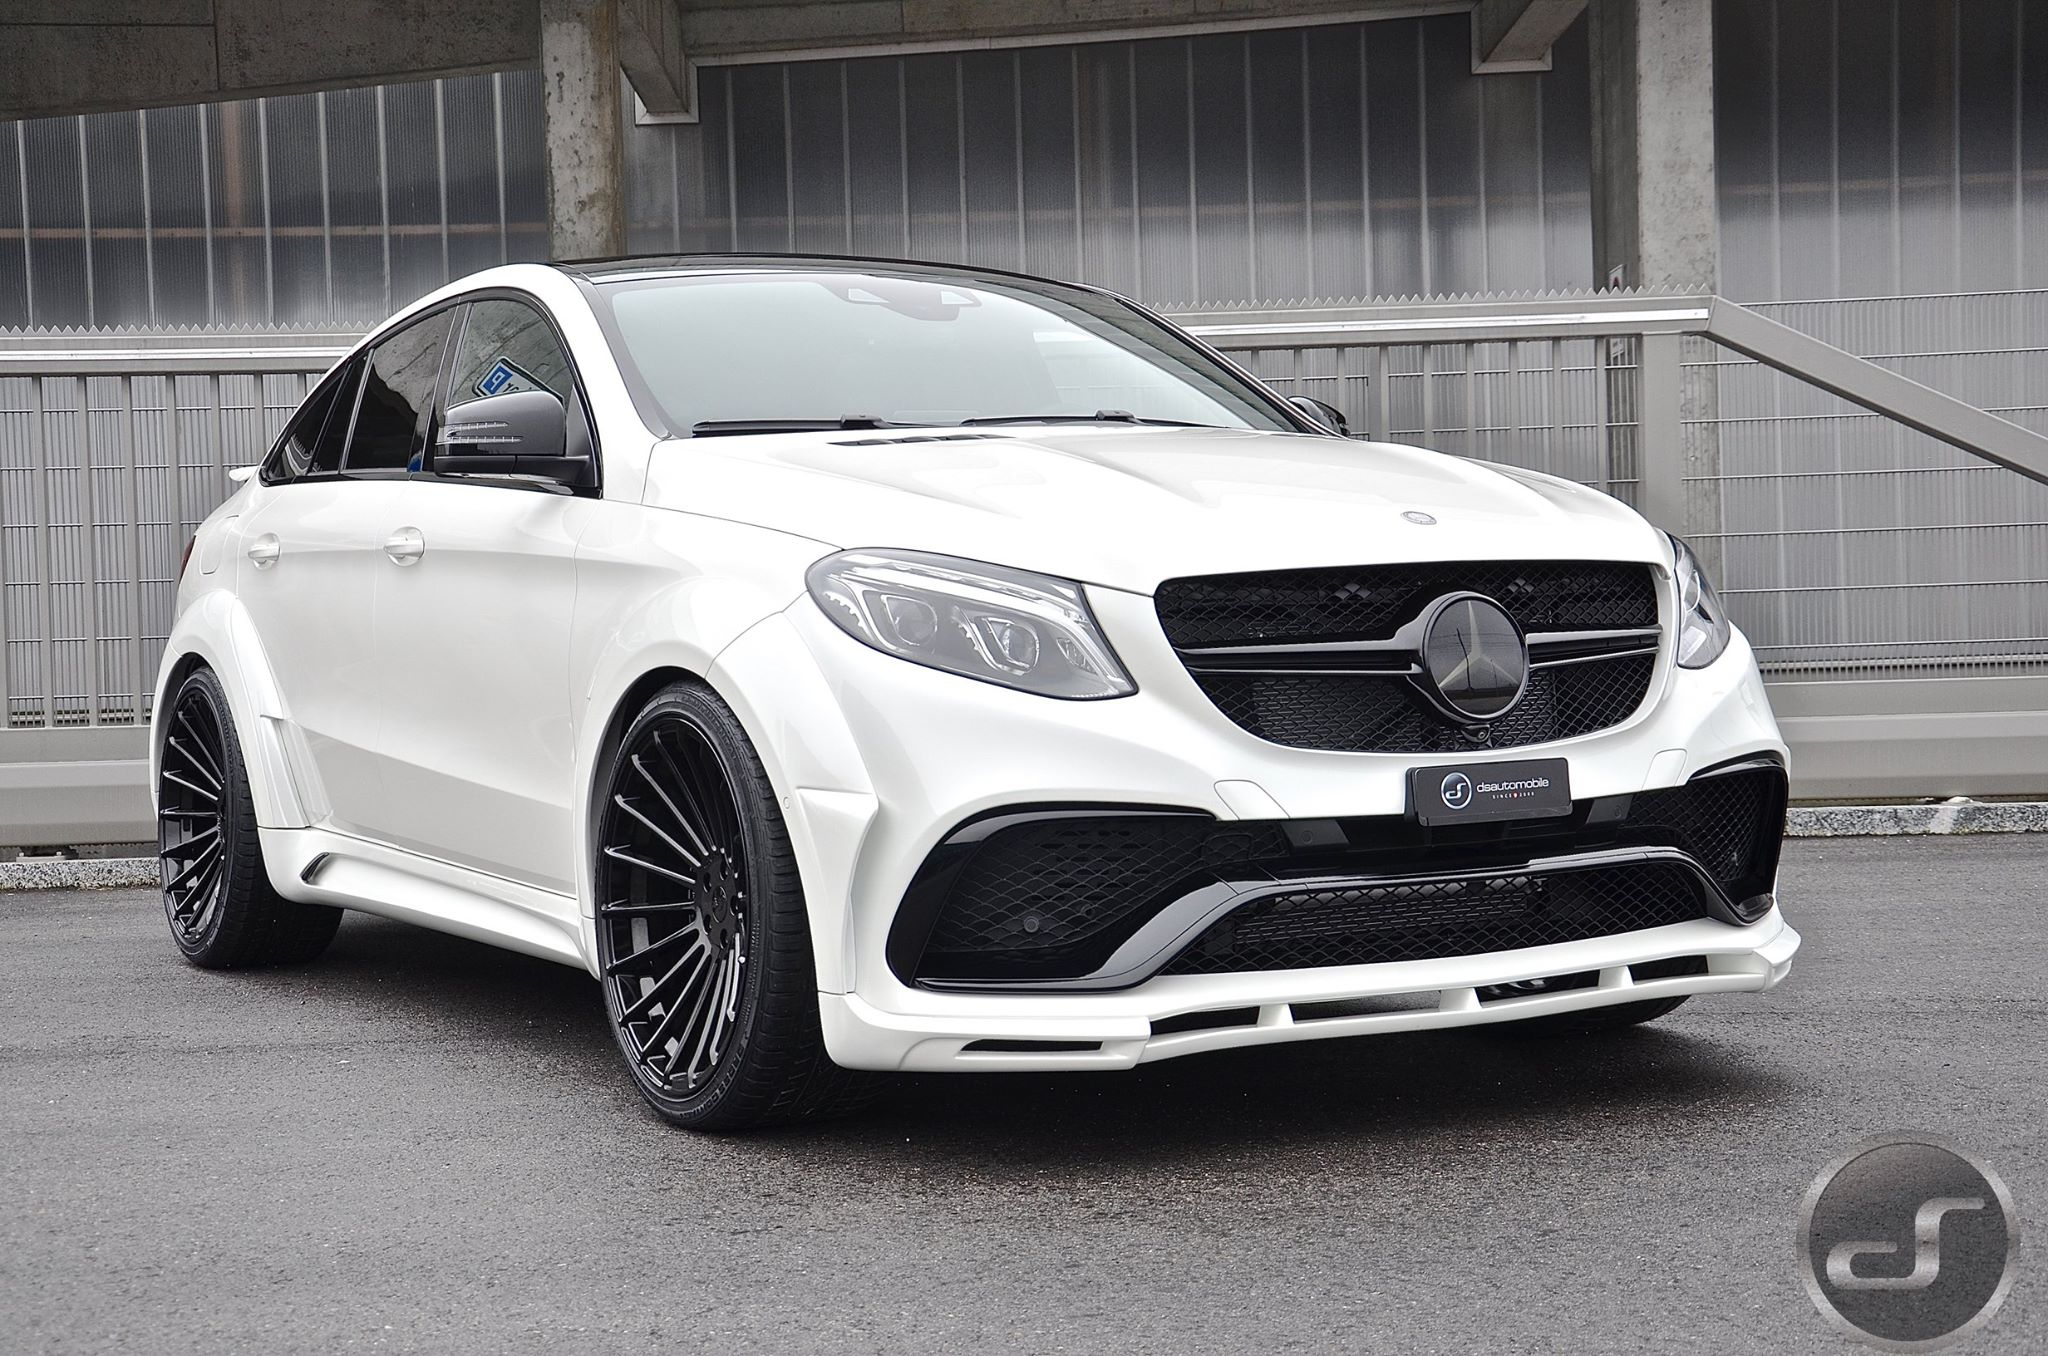 White Mercedes GLE Coupe With Hamann Body Kit Has a Wing - autoevolution